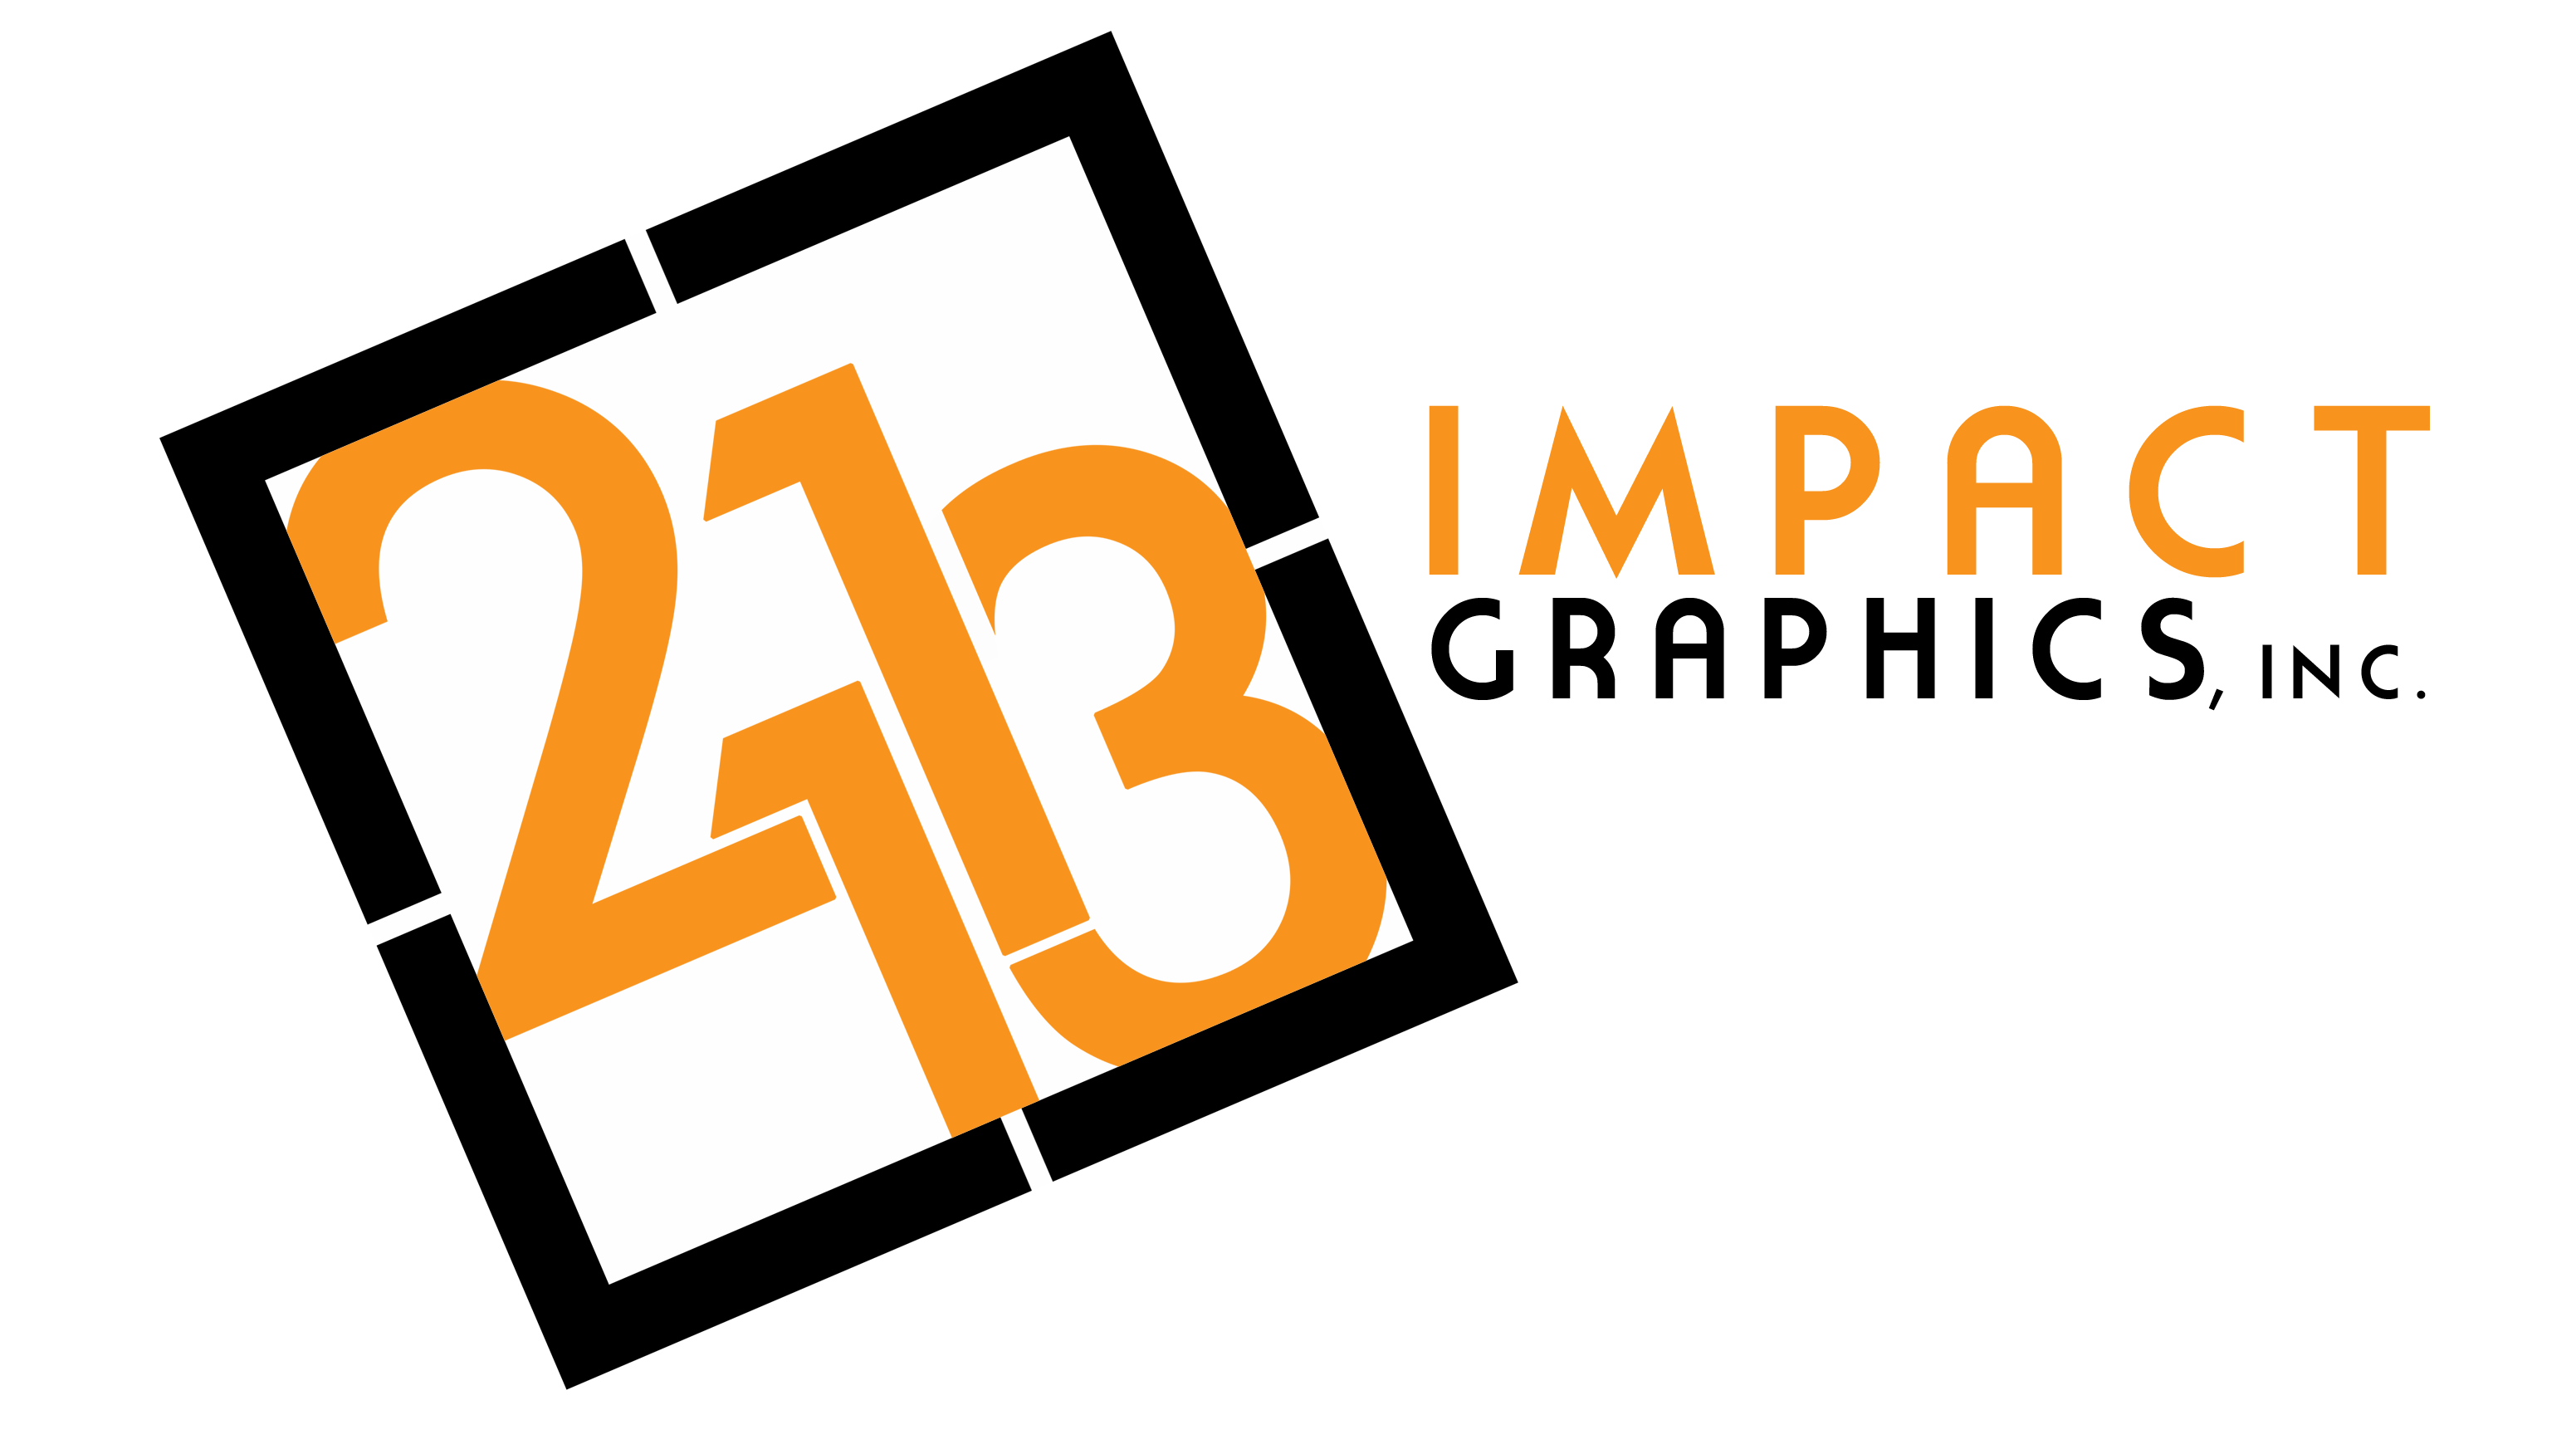 21-13 Impact Graphics, Inc.